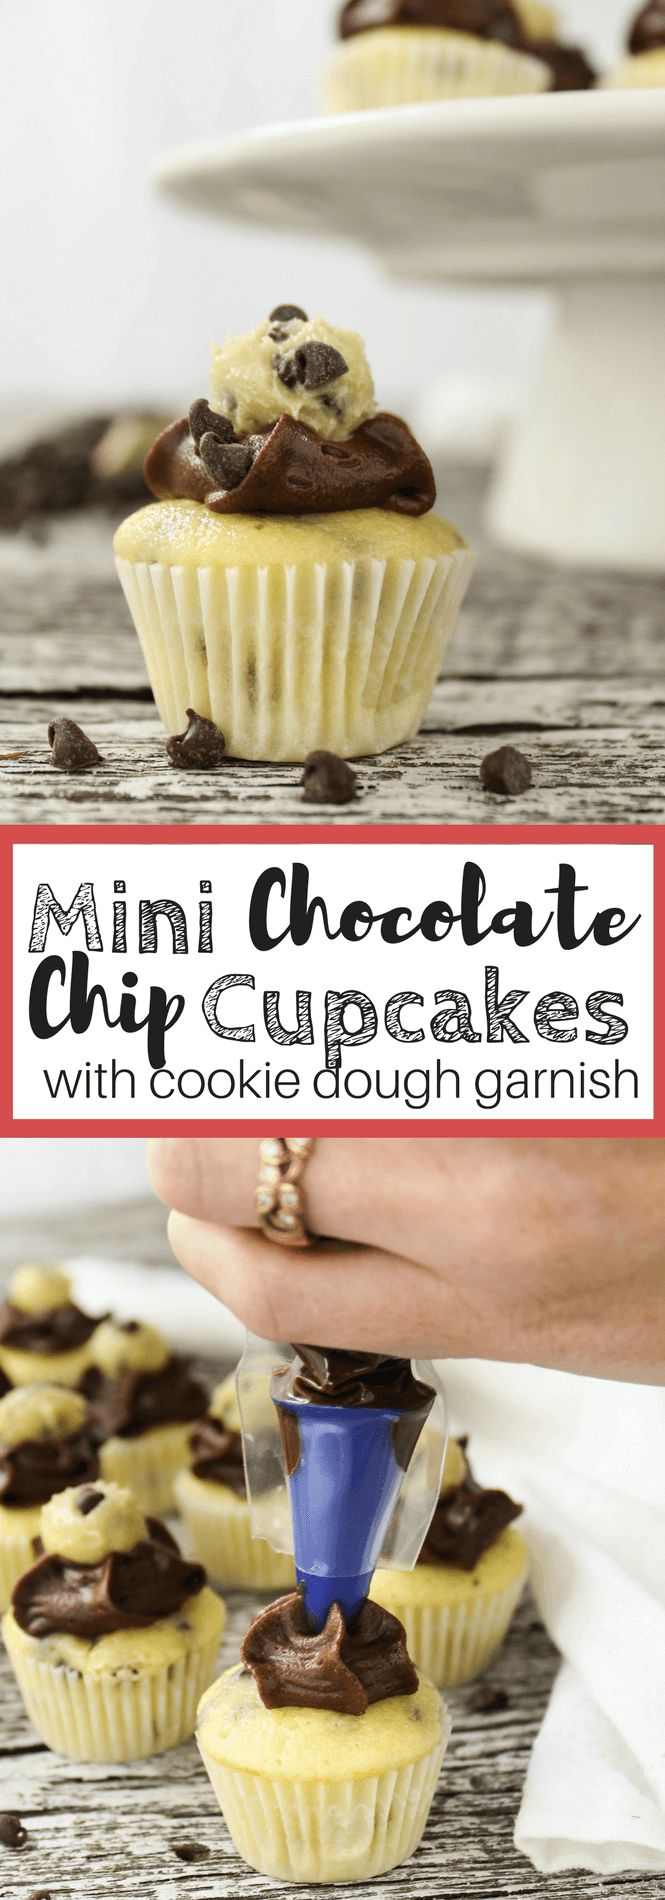 Mini Chocolate Chip Cupcakes with Edible Cookie Dough #ad #DoughboySurprise #FunWithFrosting @pillsburybaking #Fallbaking